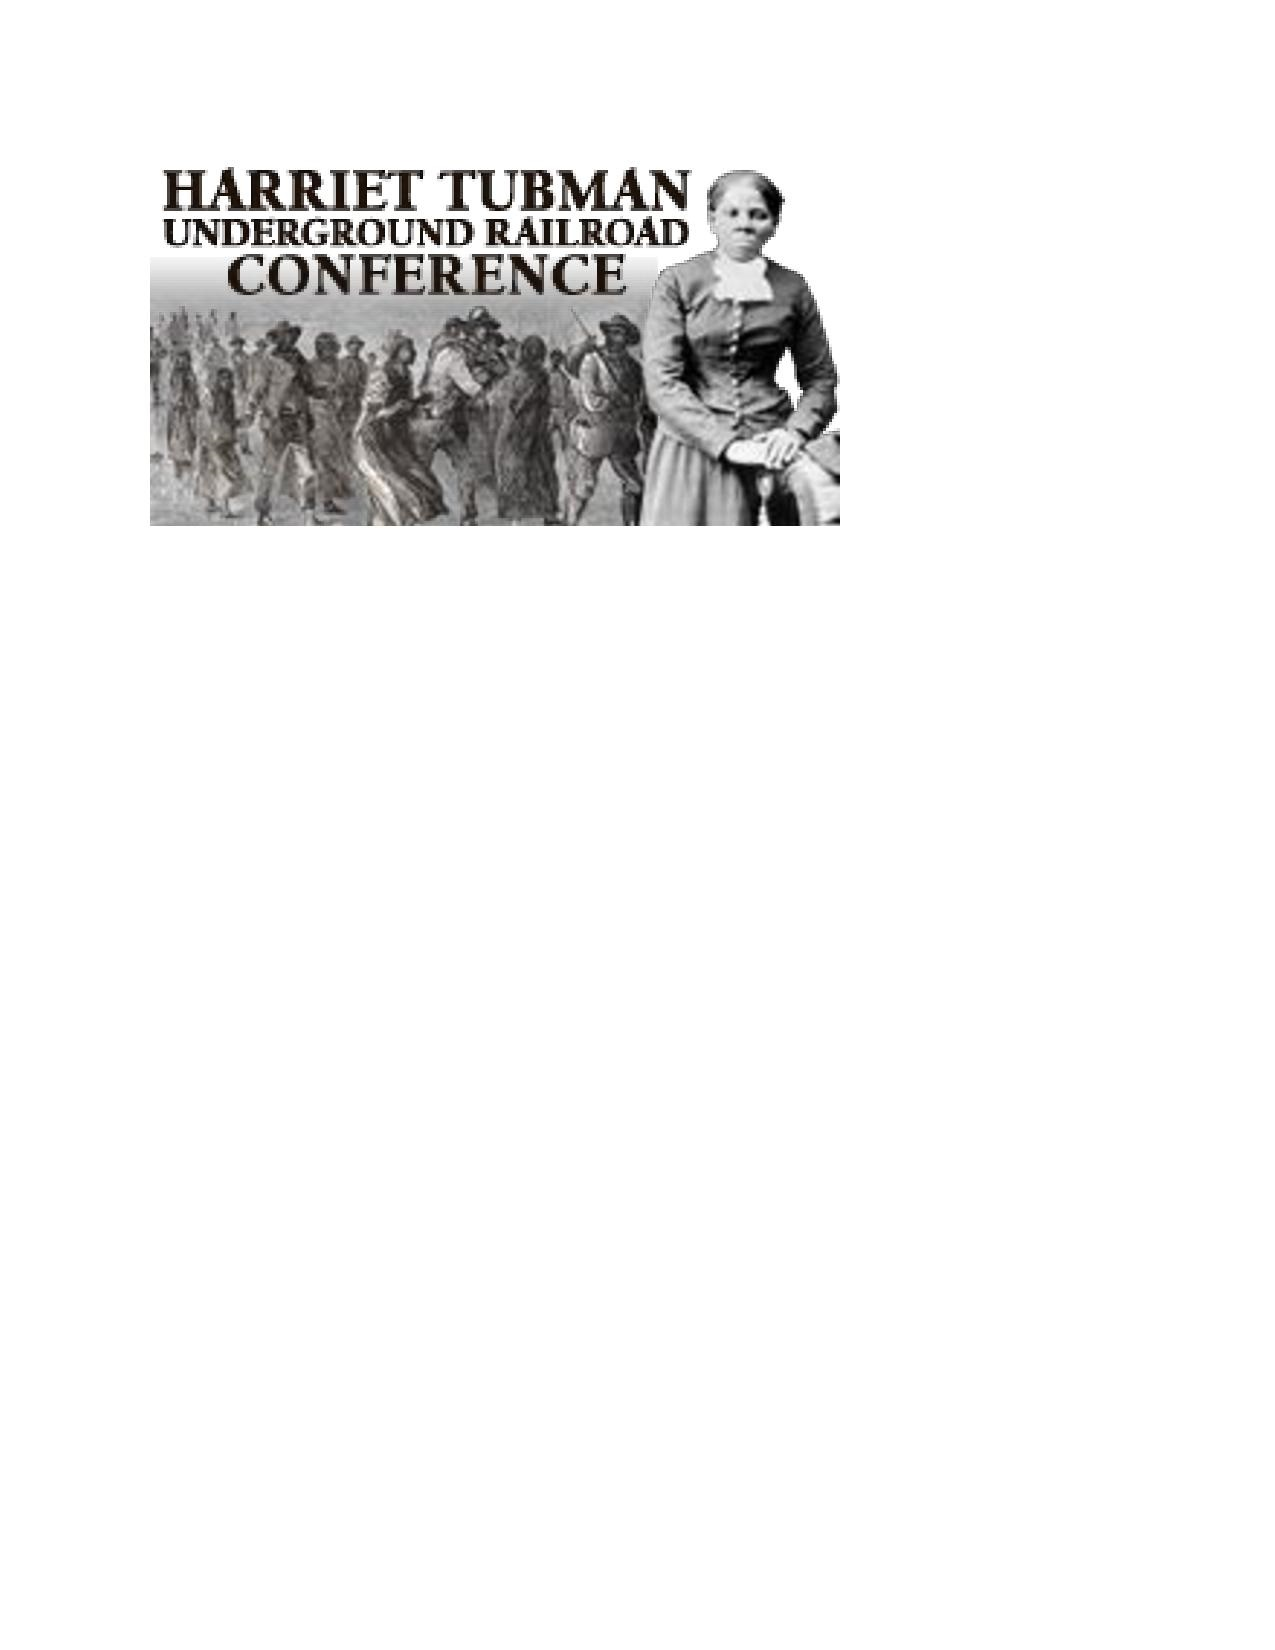 Harriet Tubman Conference photo-page